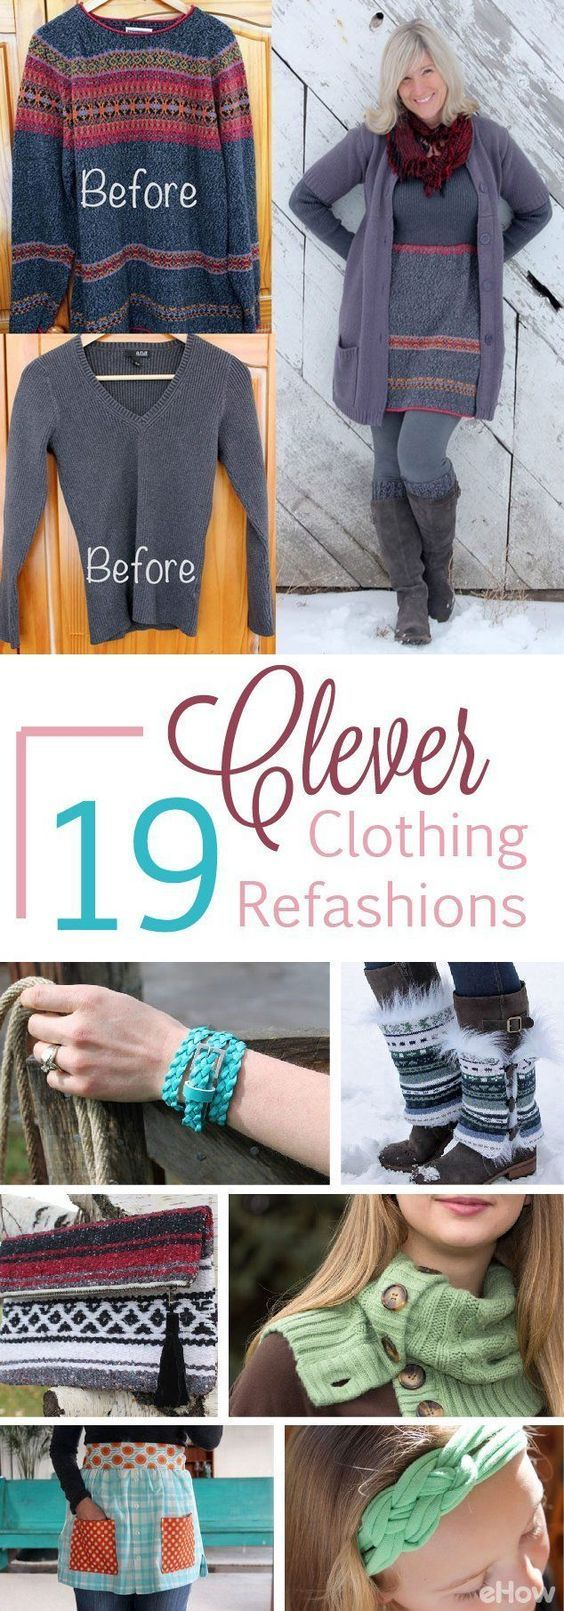 Best 25+ Recycled clothing ideas on Pinterest